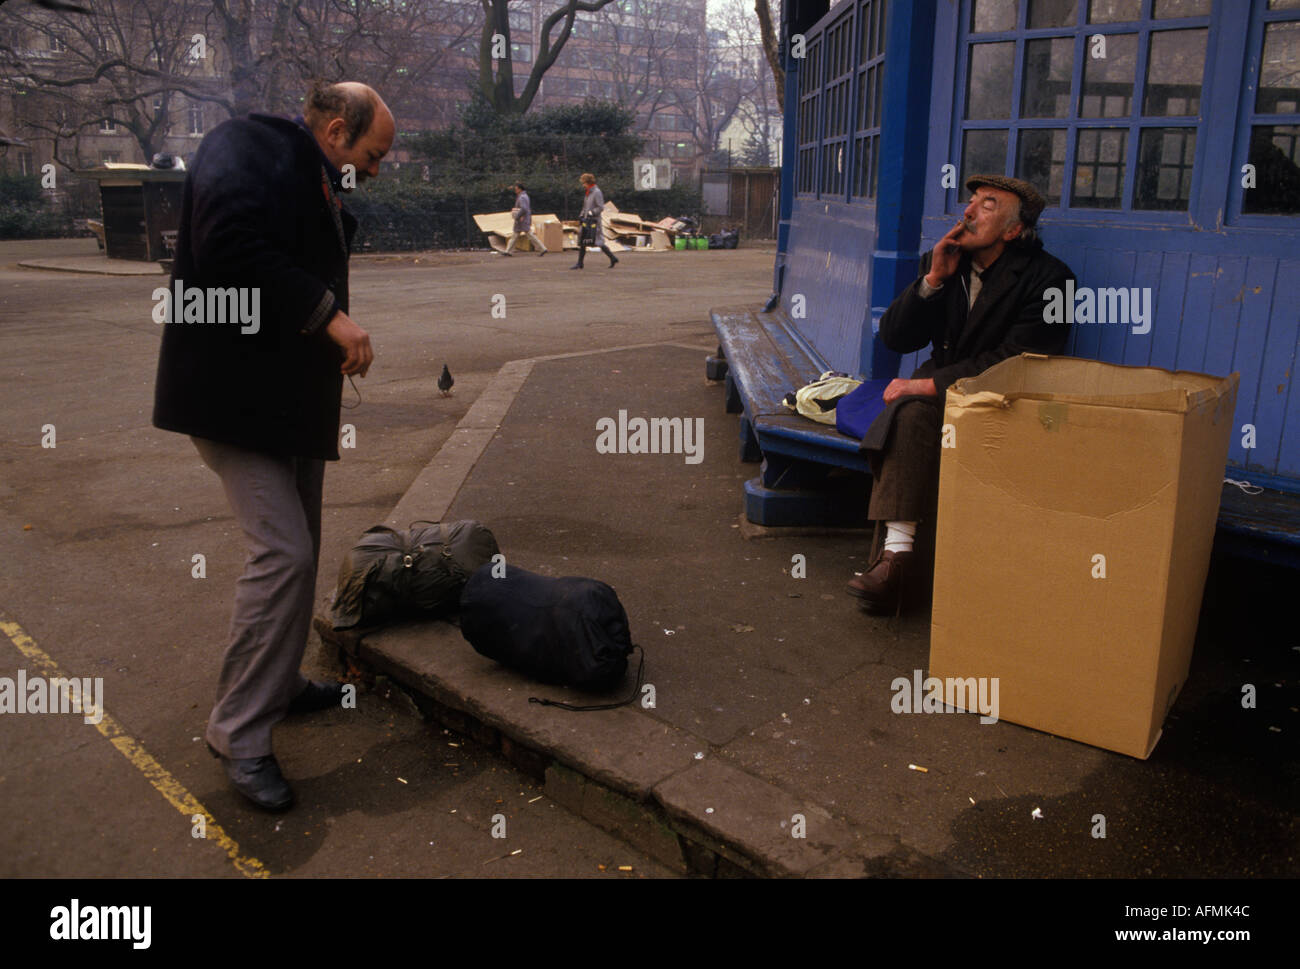 Tramps  sleeping rough chatting to each other central  London 1985 Lincoln Inns Field 1980s HOMER SYKES Stock Photo